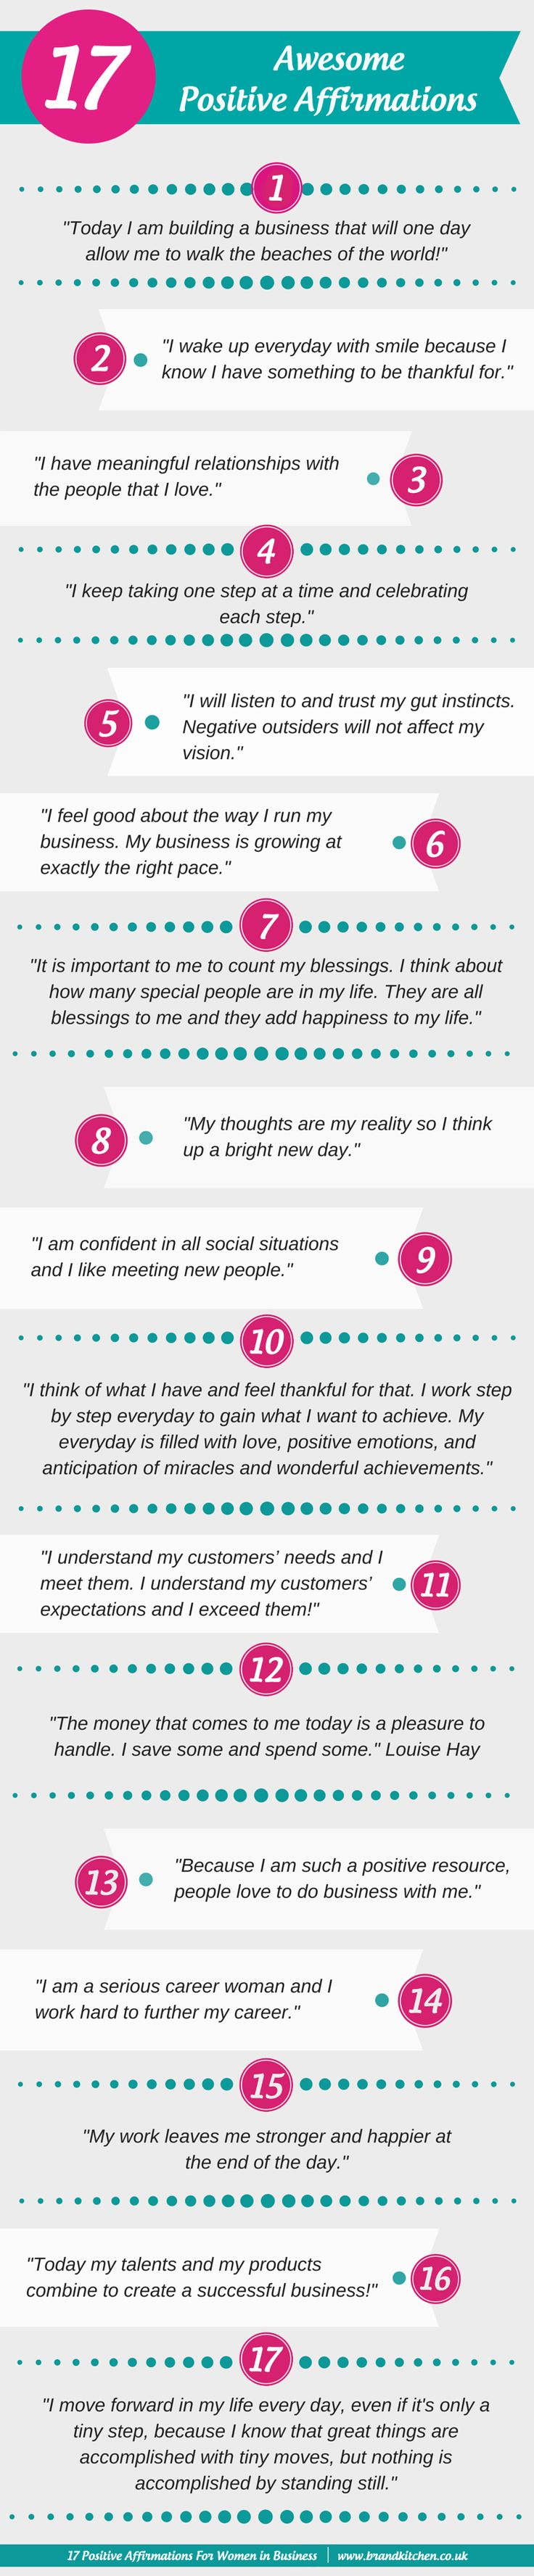 17 Awesome Positive Affirmations #infographic #affirmations www.brandkitchen.co.uk